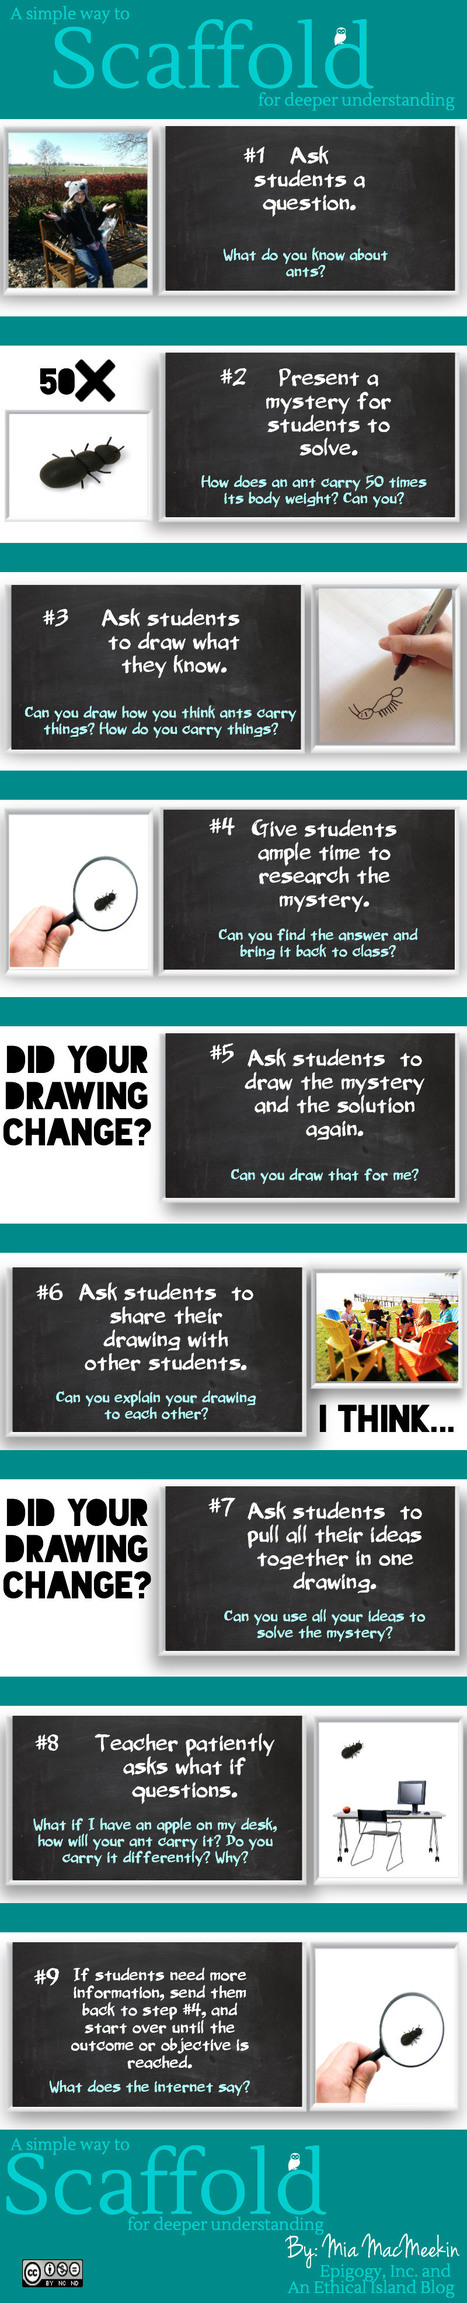 9 Strategies to Scaffold for Students Deeper Learning [Infographic] | school improvement process | Scoop.it